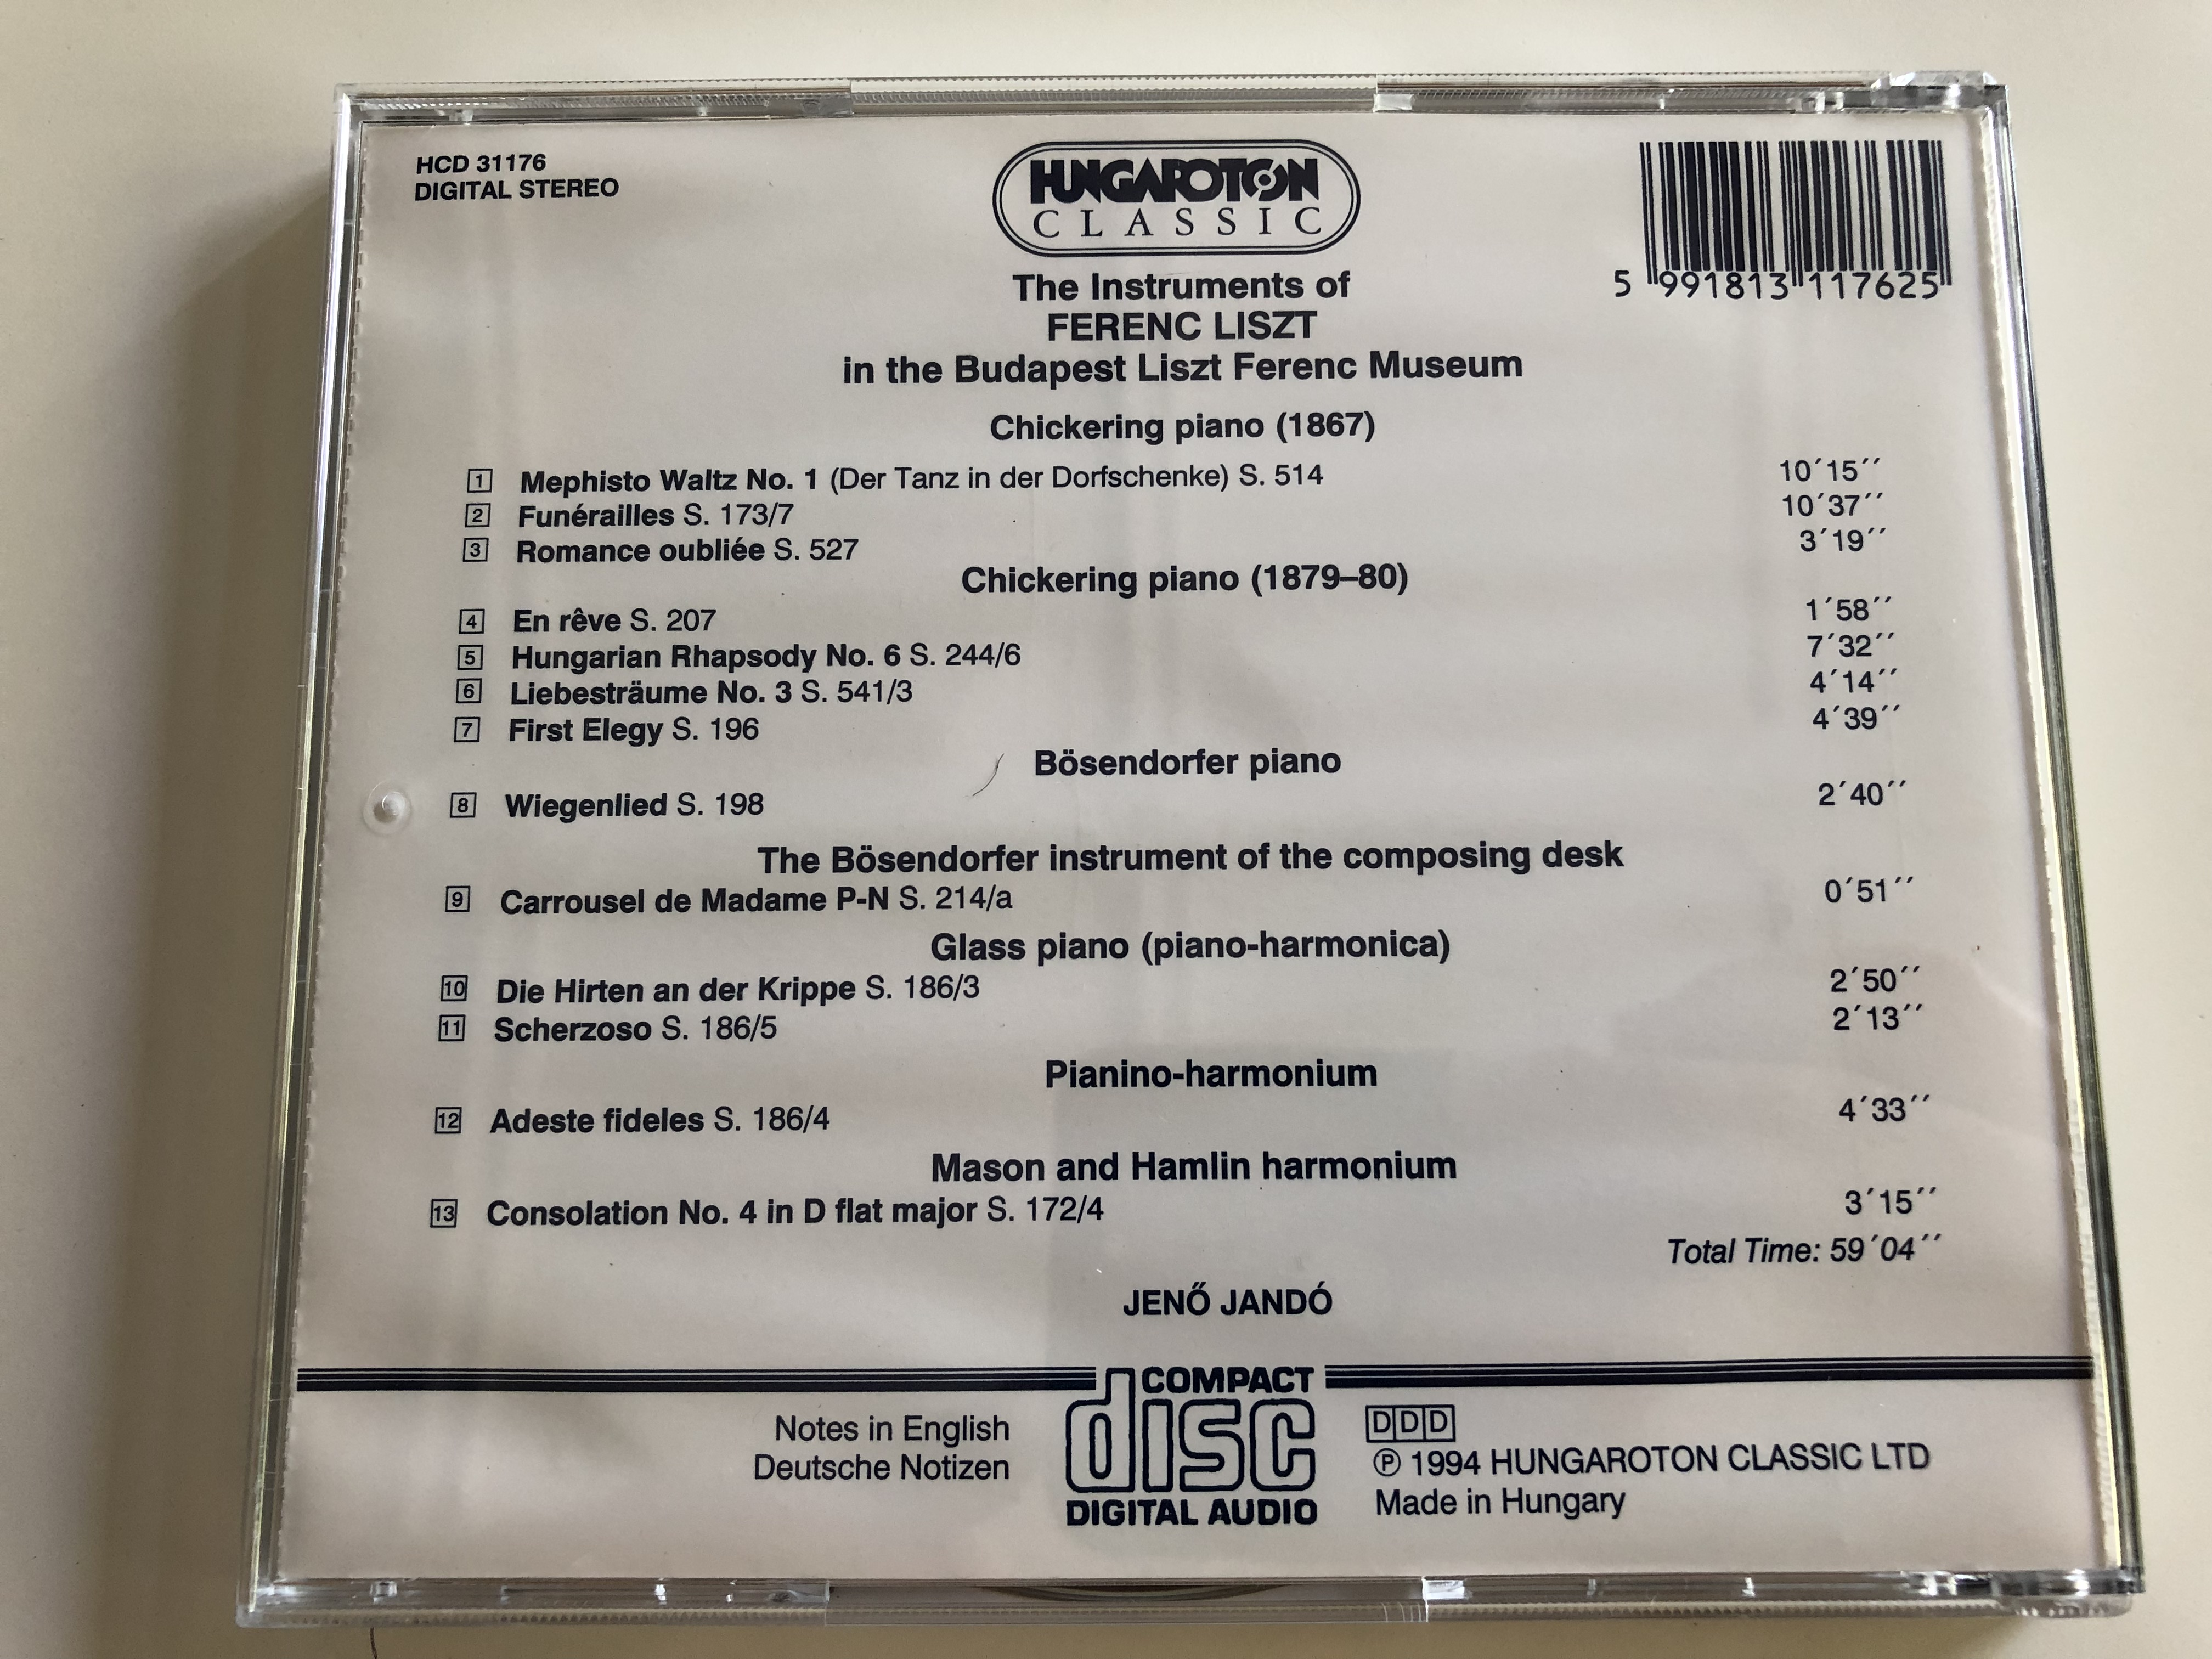 the-instruments-of-liszt-in-the-budapest-liszt-ferenc-museum-jen-jand-piano-hungaroton-classic-hcd-31176-audio-cd-1994-9-.jpg